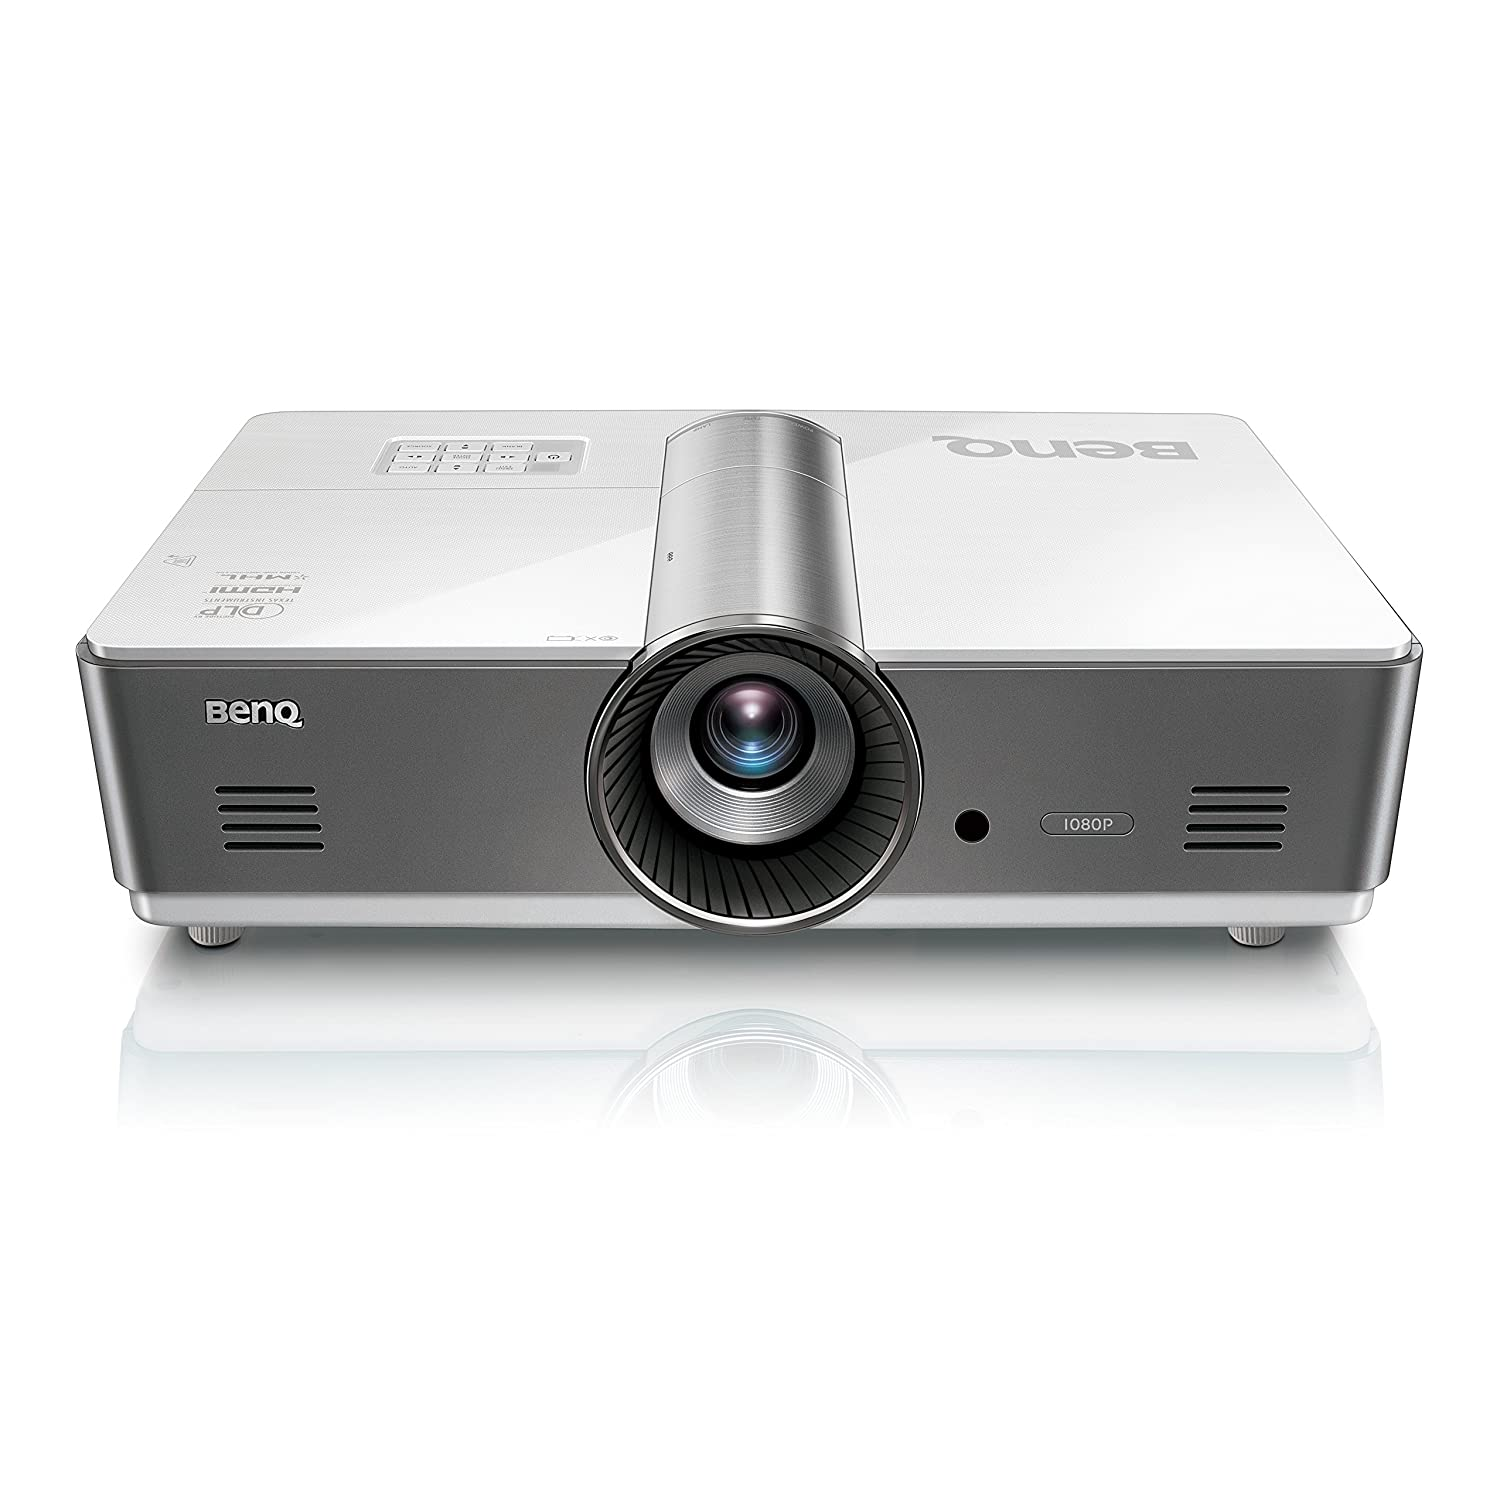 BenQ MH760 1080P Business Monitor   5000 Lumens for Lights on Presentations    LAN Control for Network Infrastructure   Keystone for Flexible Setup